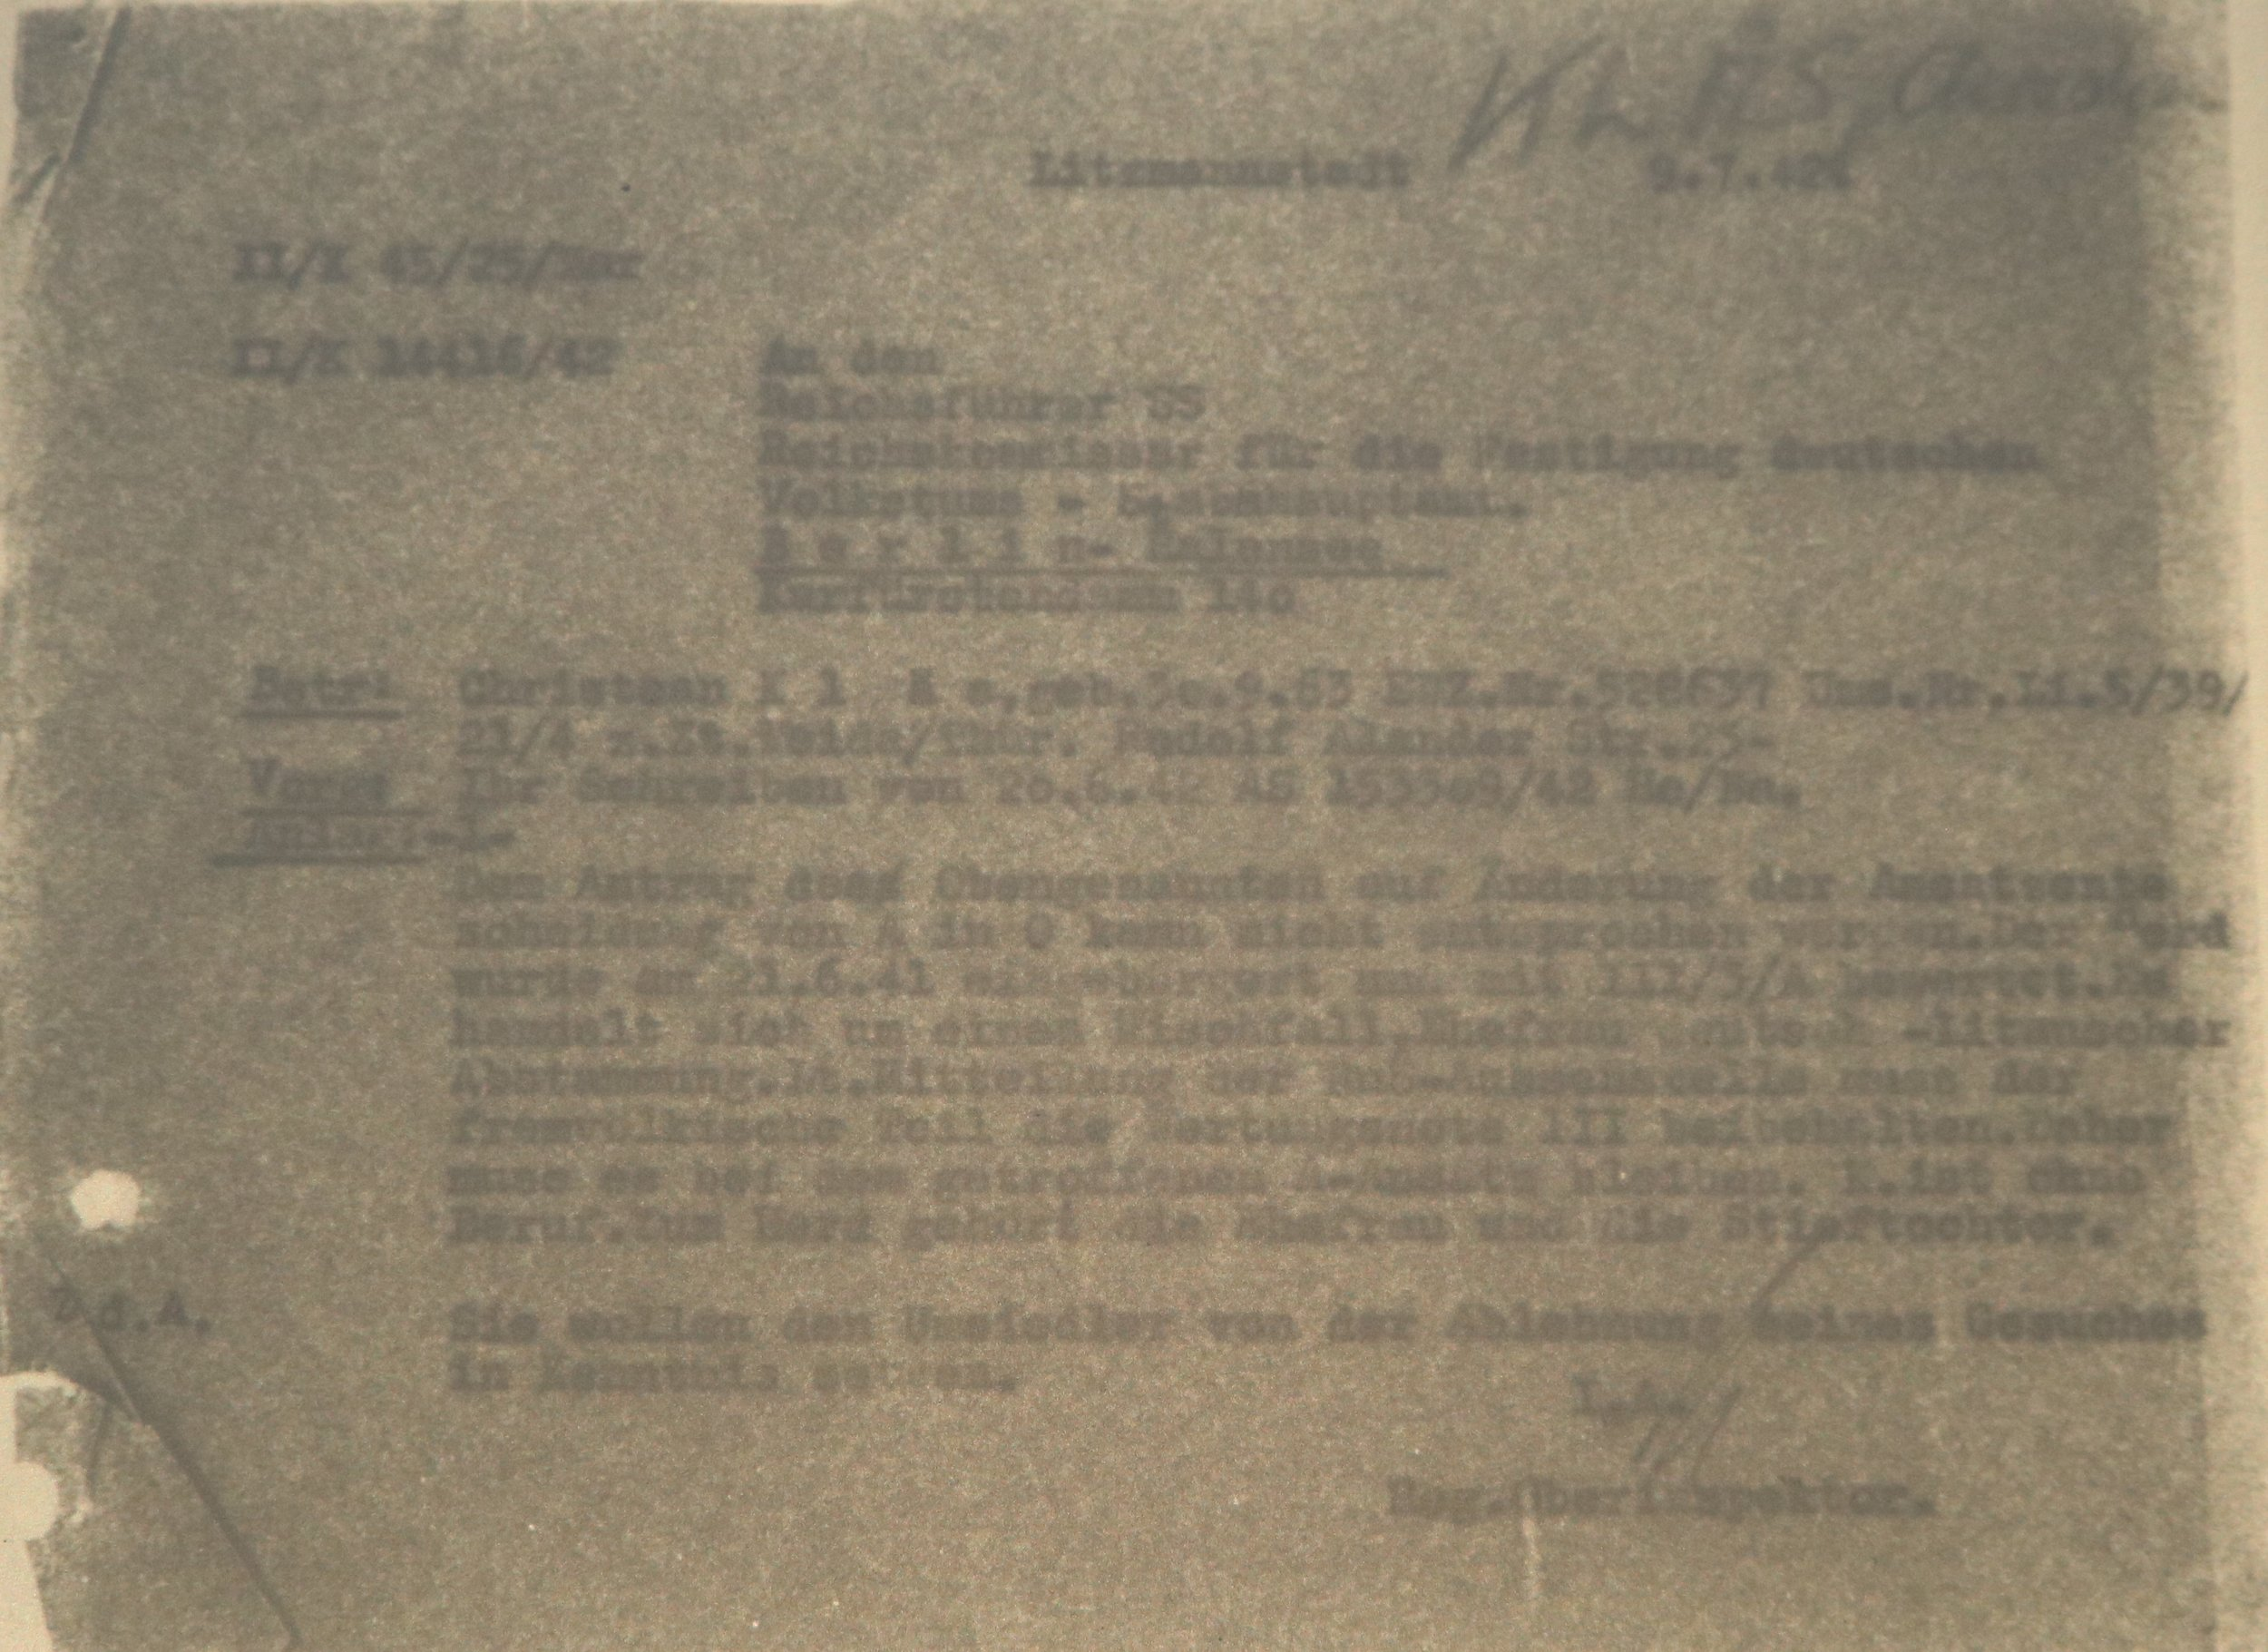 Letter from the EWZ office in Litzmannstadt from the 9th of July, 1942—in very poor condition